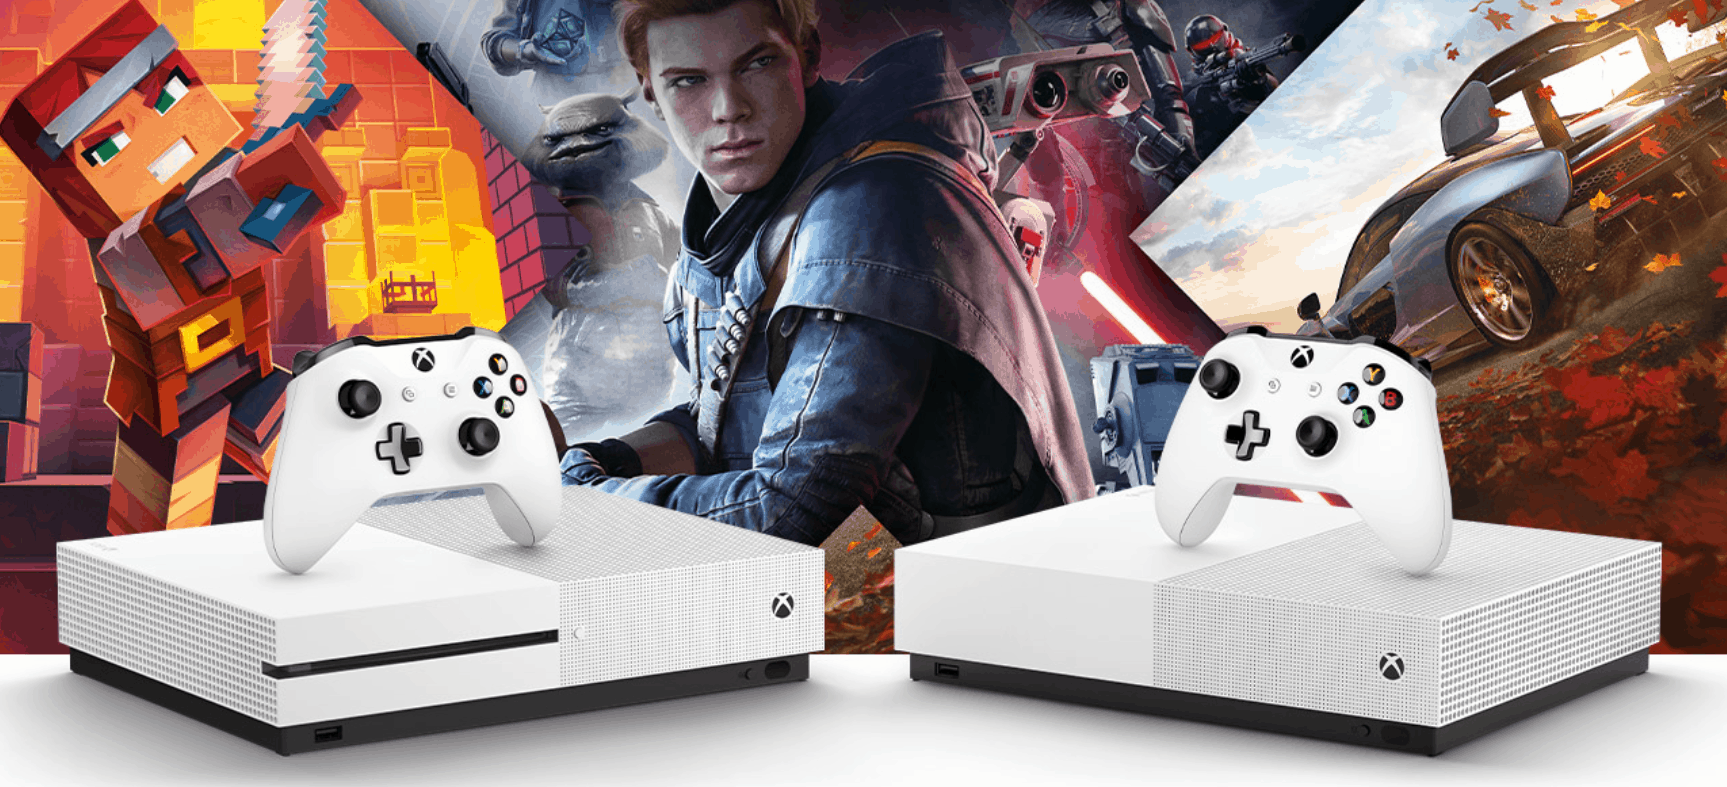 Which gaming console is best? Xbox One S is the top 5 Alternative Game Consoles to Playstation 5 that are Worth Spending Your Money On